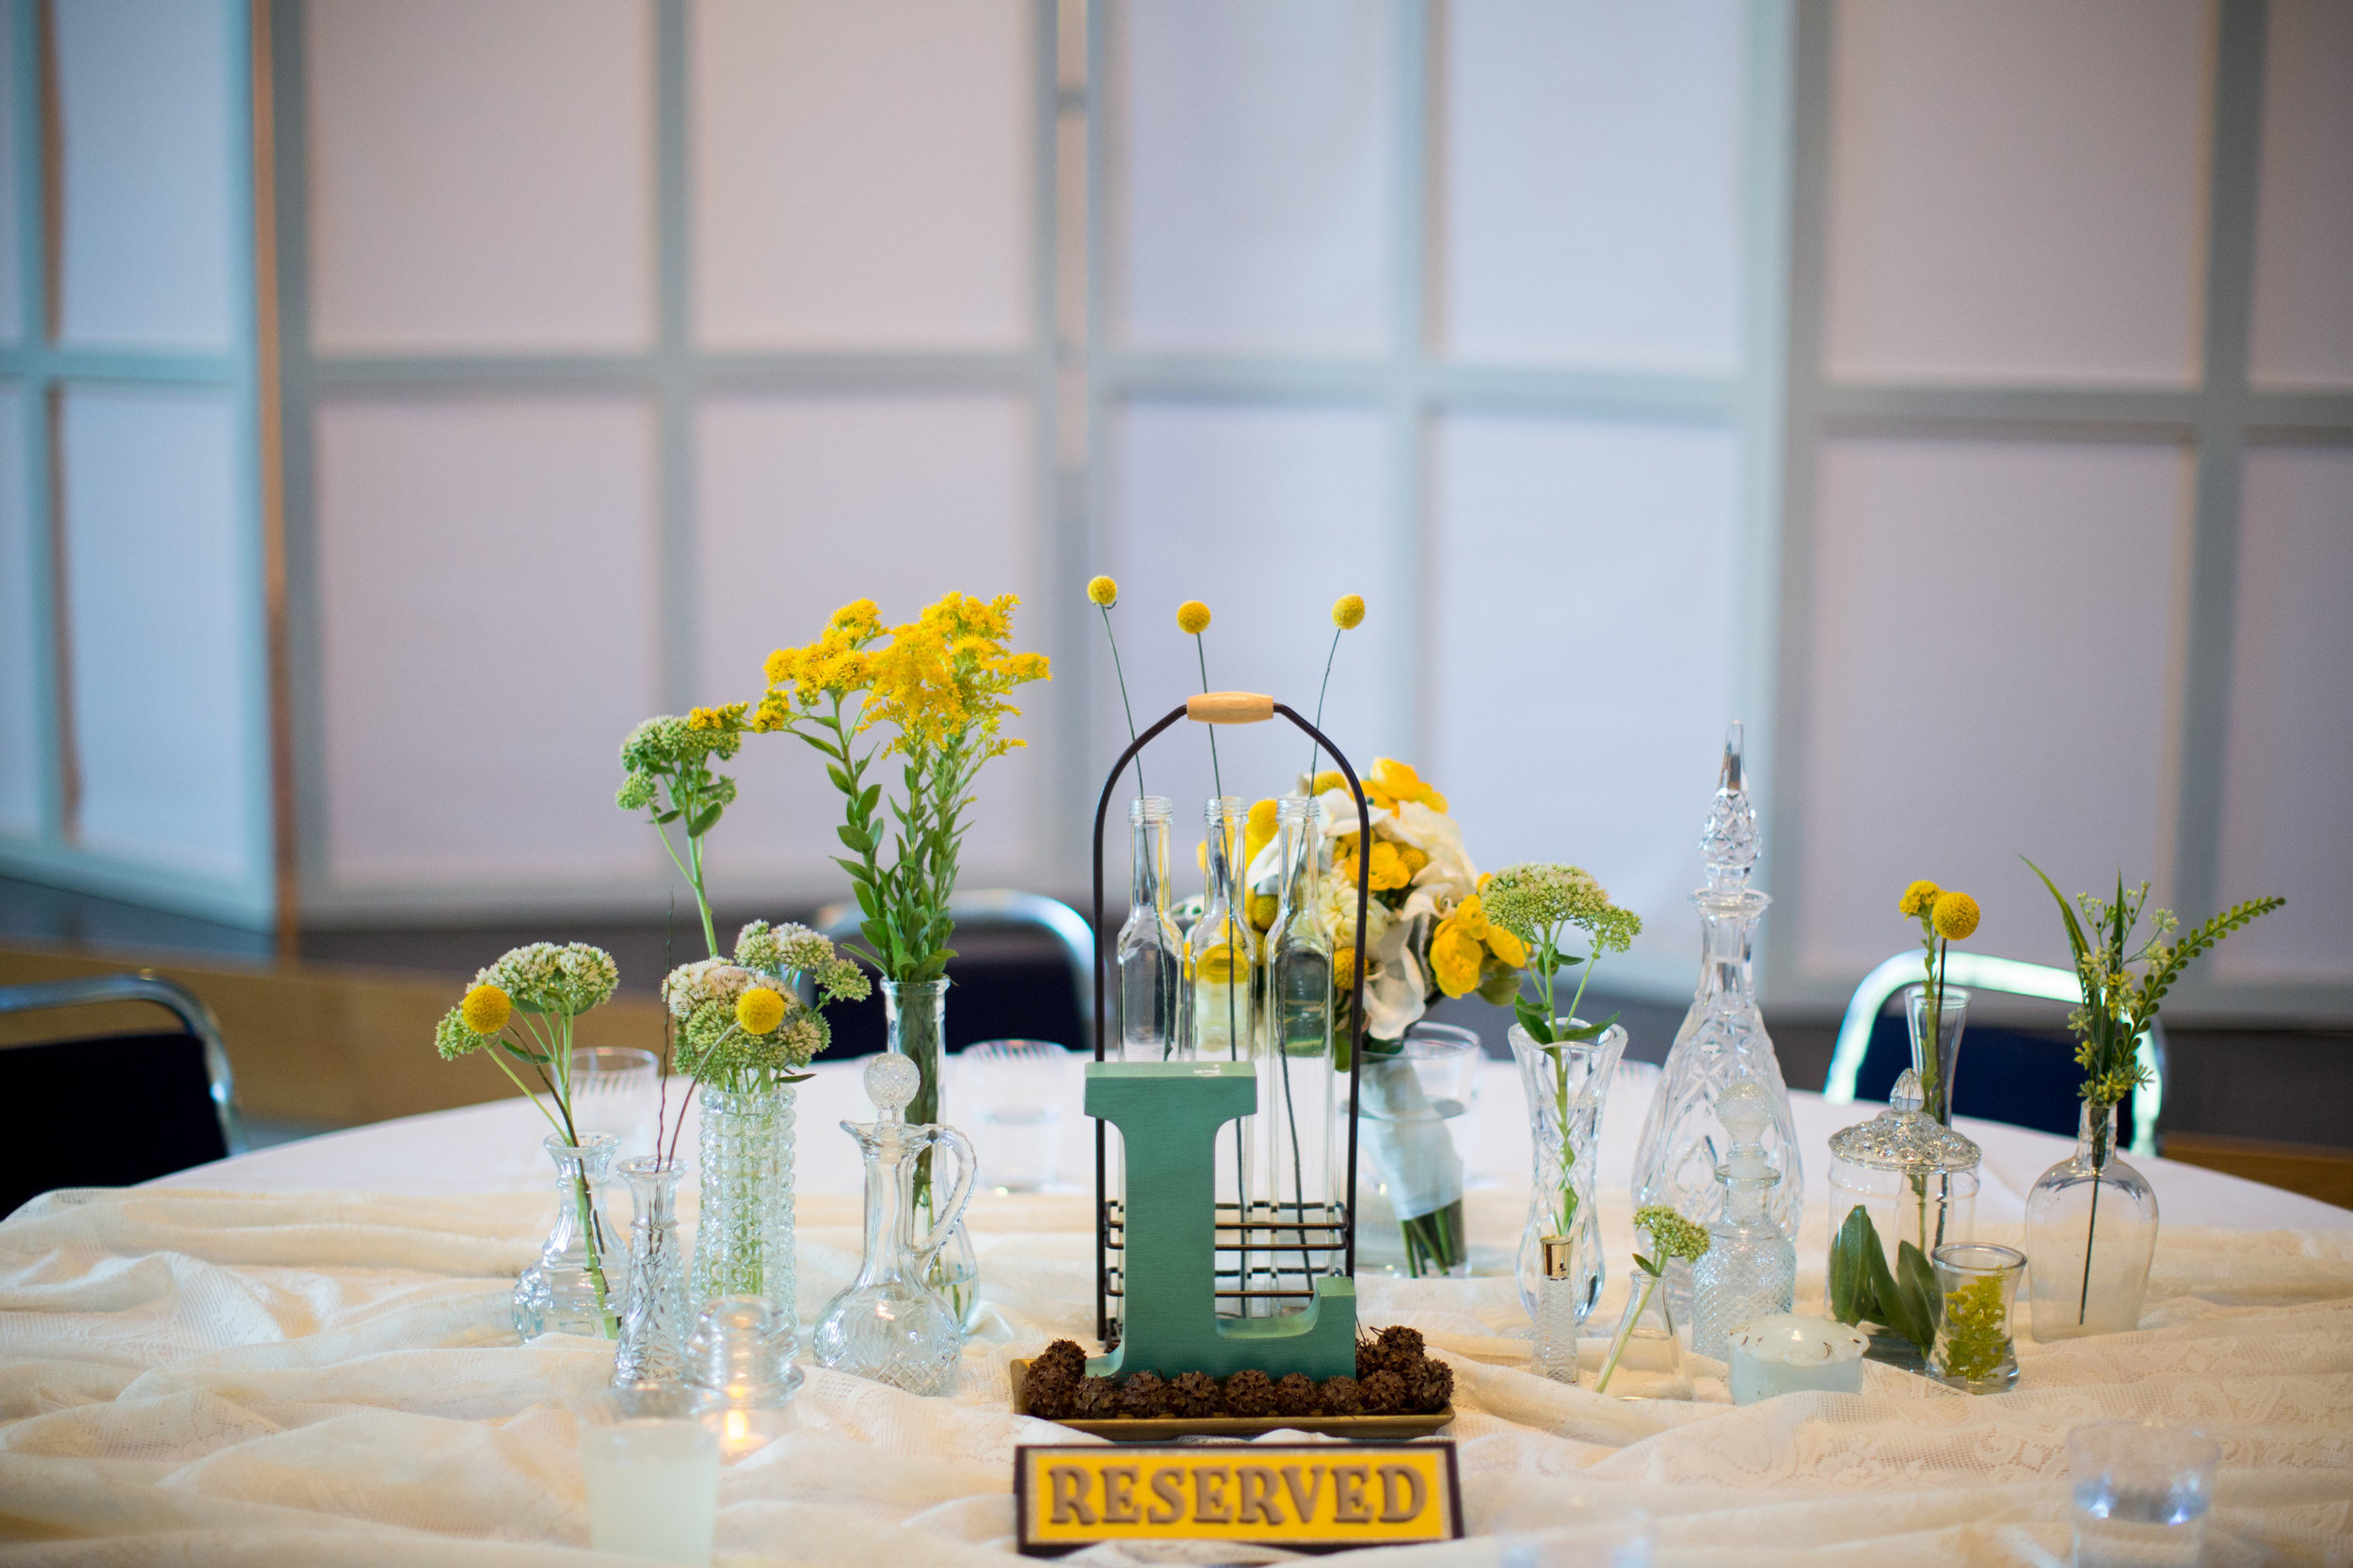 iowa-venue-fort-dodge-first-presbyterian-church-reception-rustic-country-lace-yellow-billy-balls-teal-vintage-glass-centerpieces